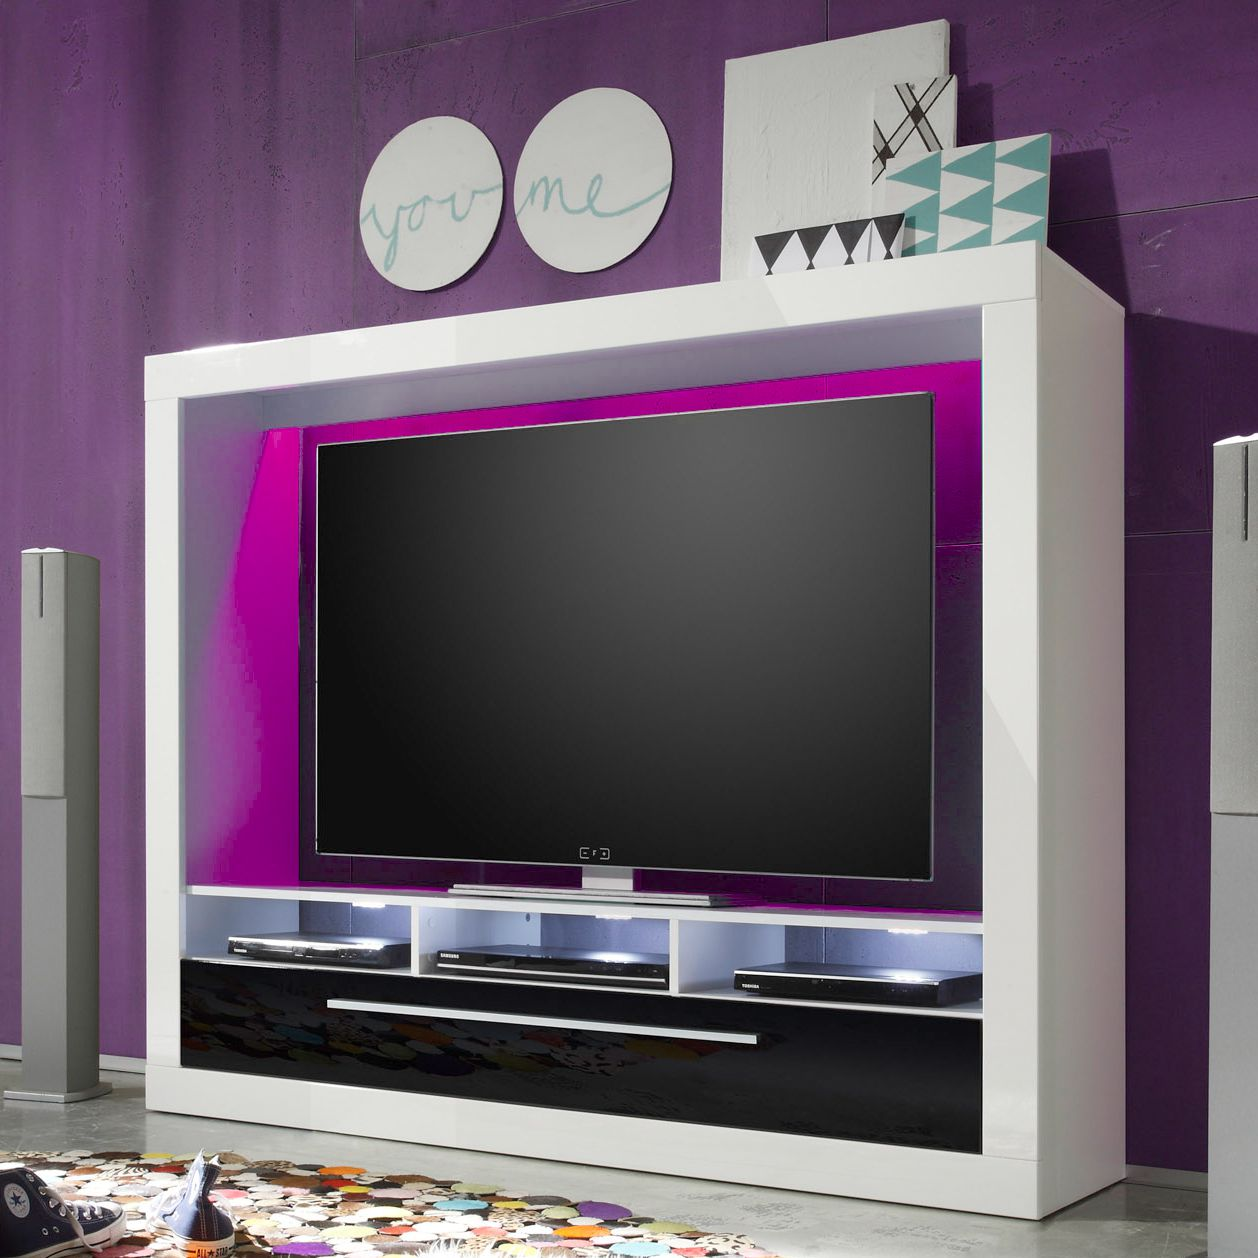 tv wand baltinava i hochglanz wei hochglanz schwarz. Black Bedroom Furniture Sets. Home Design Ideas